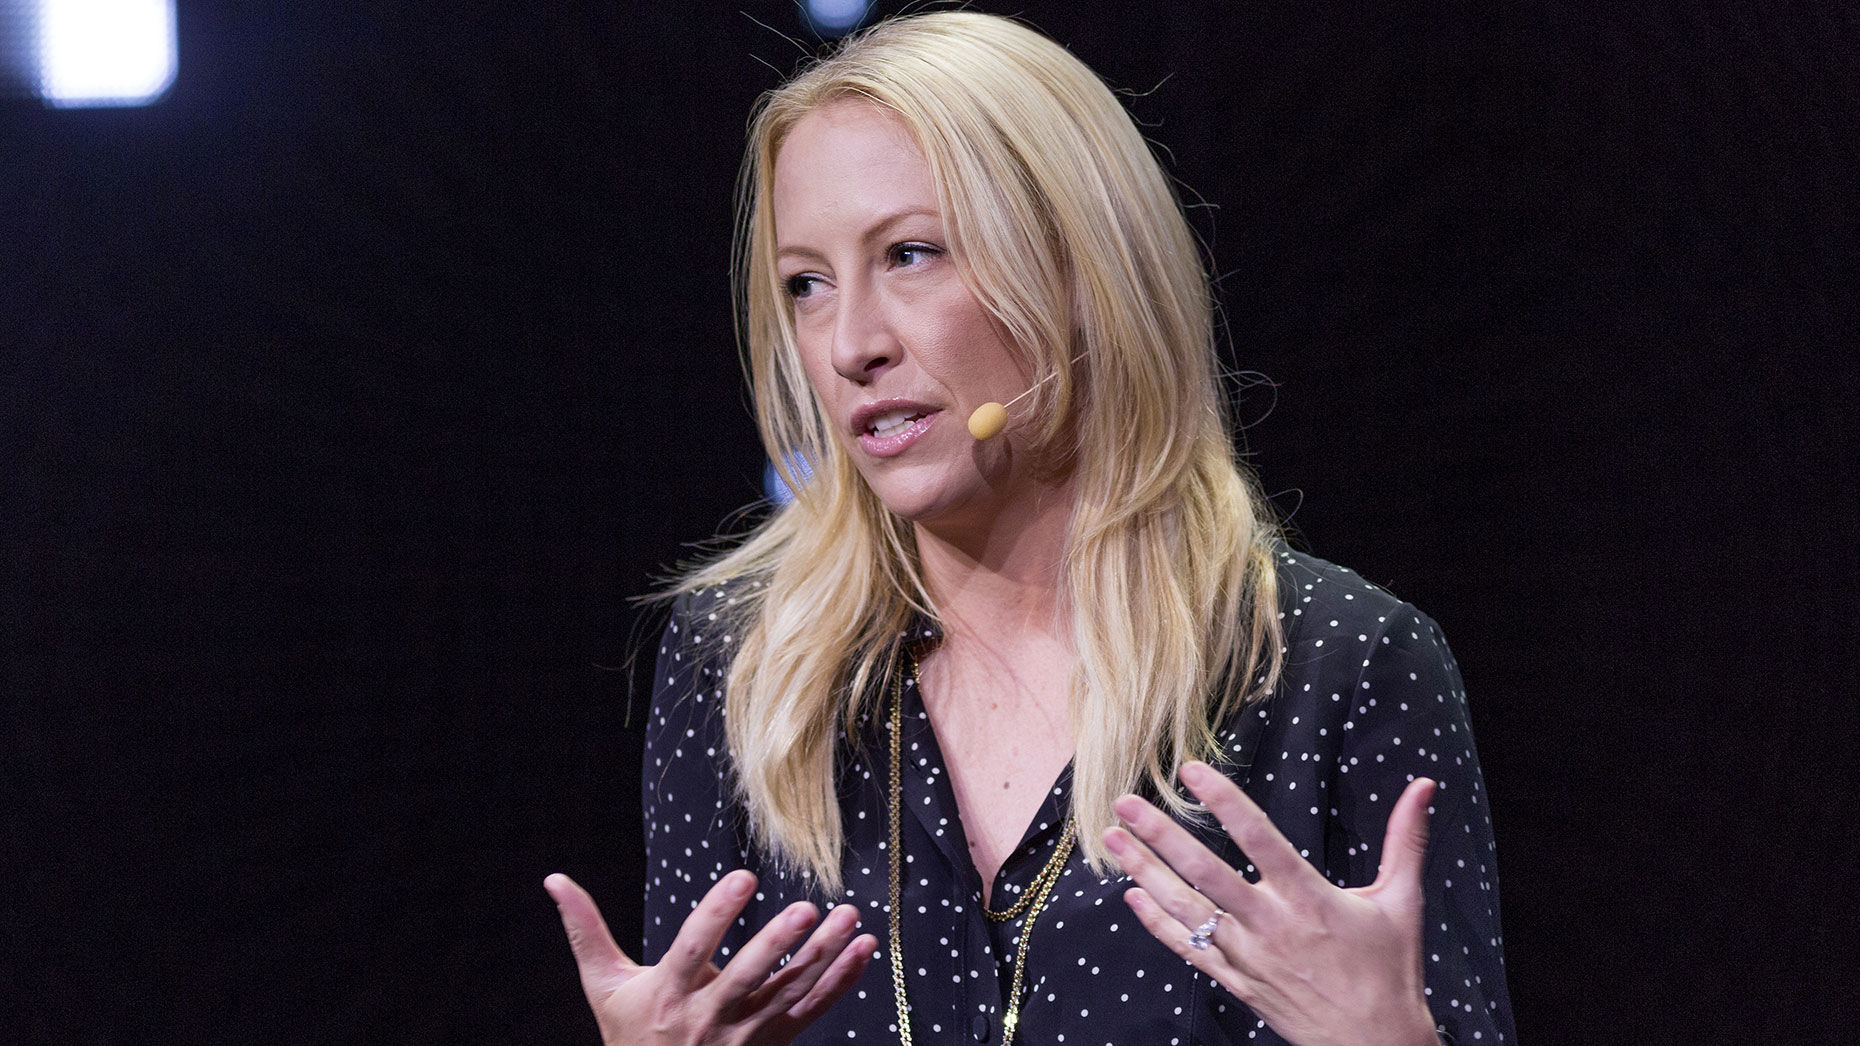 Eventbrite CEO Julia Hartz. Photo: AP